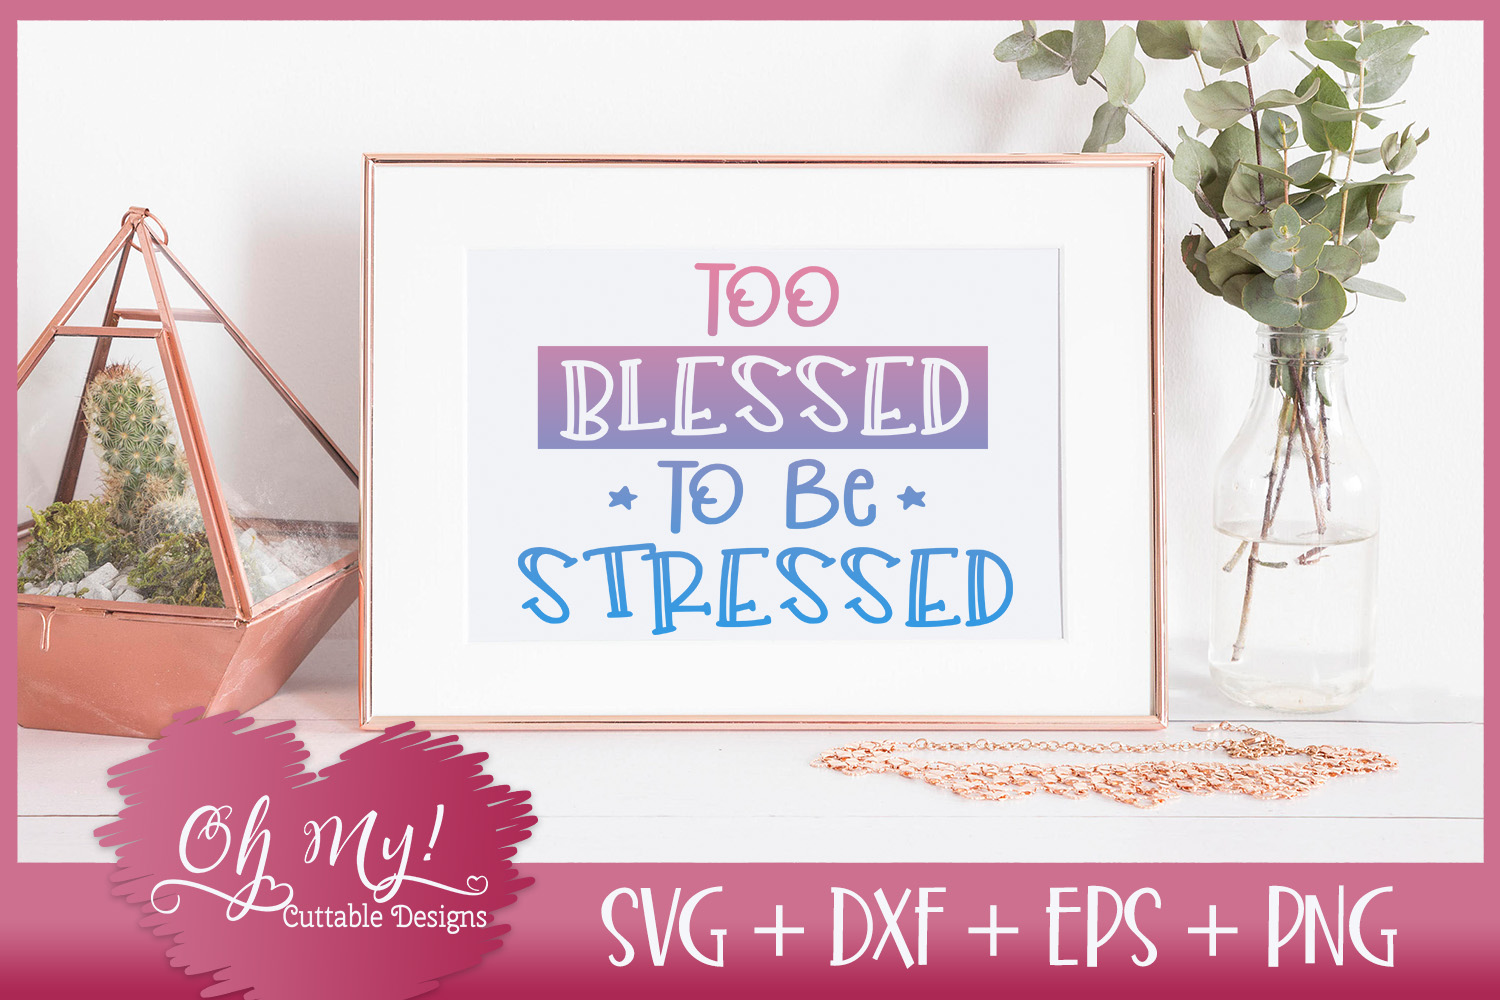 Too Blessed To Be Stressed - SVG DXF EPS PNG Cutting File example image 3